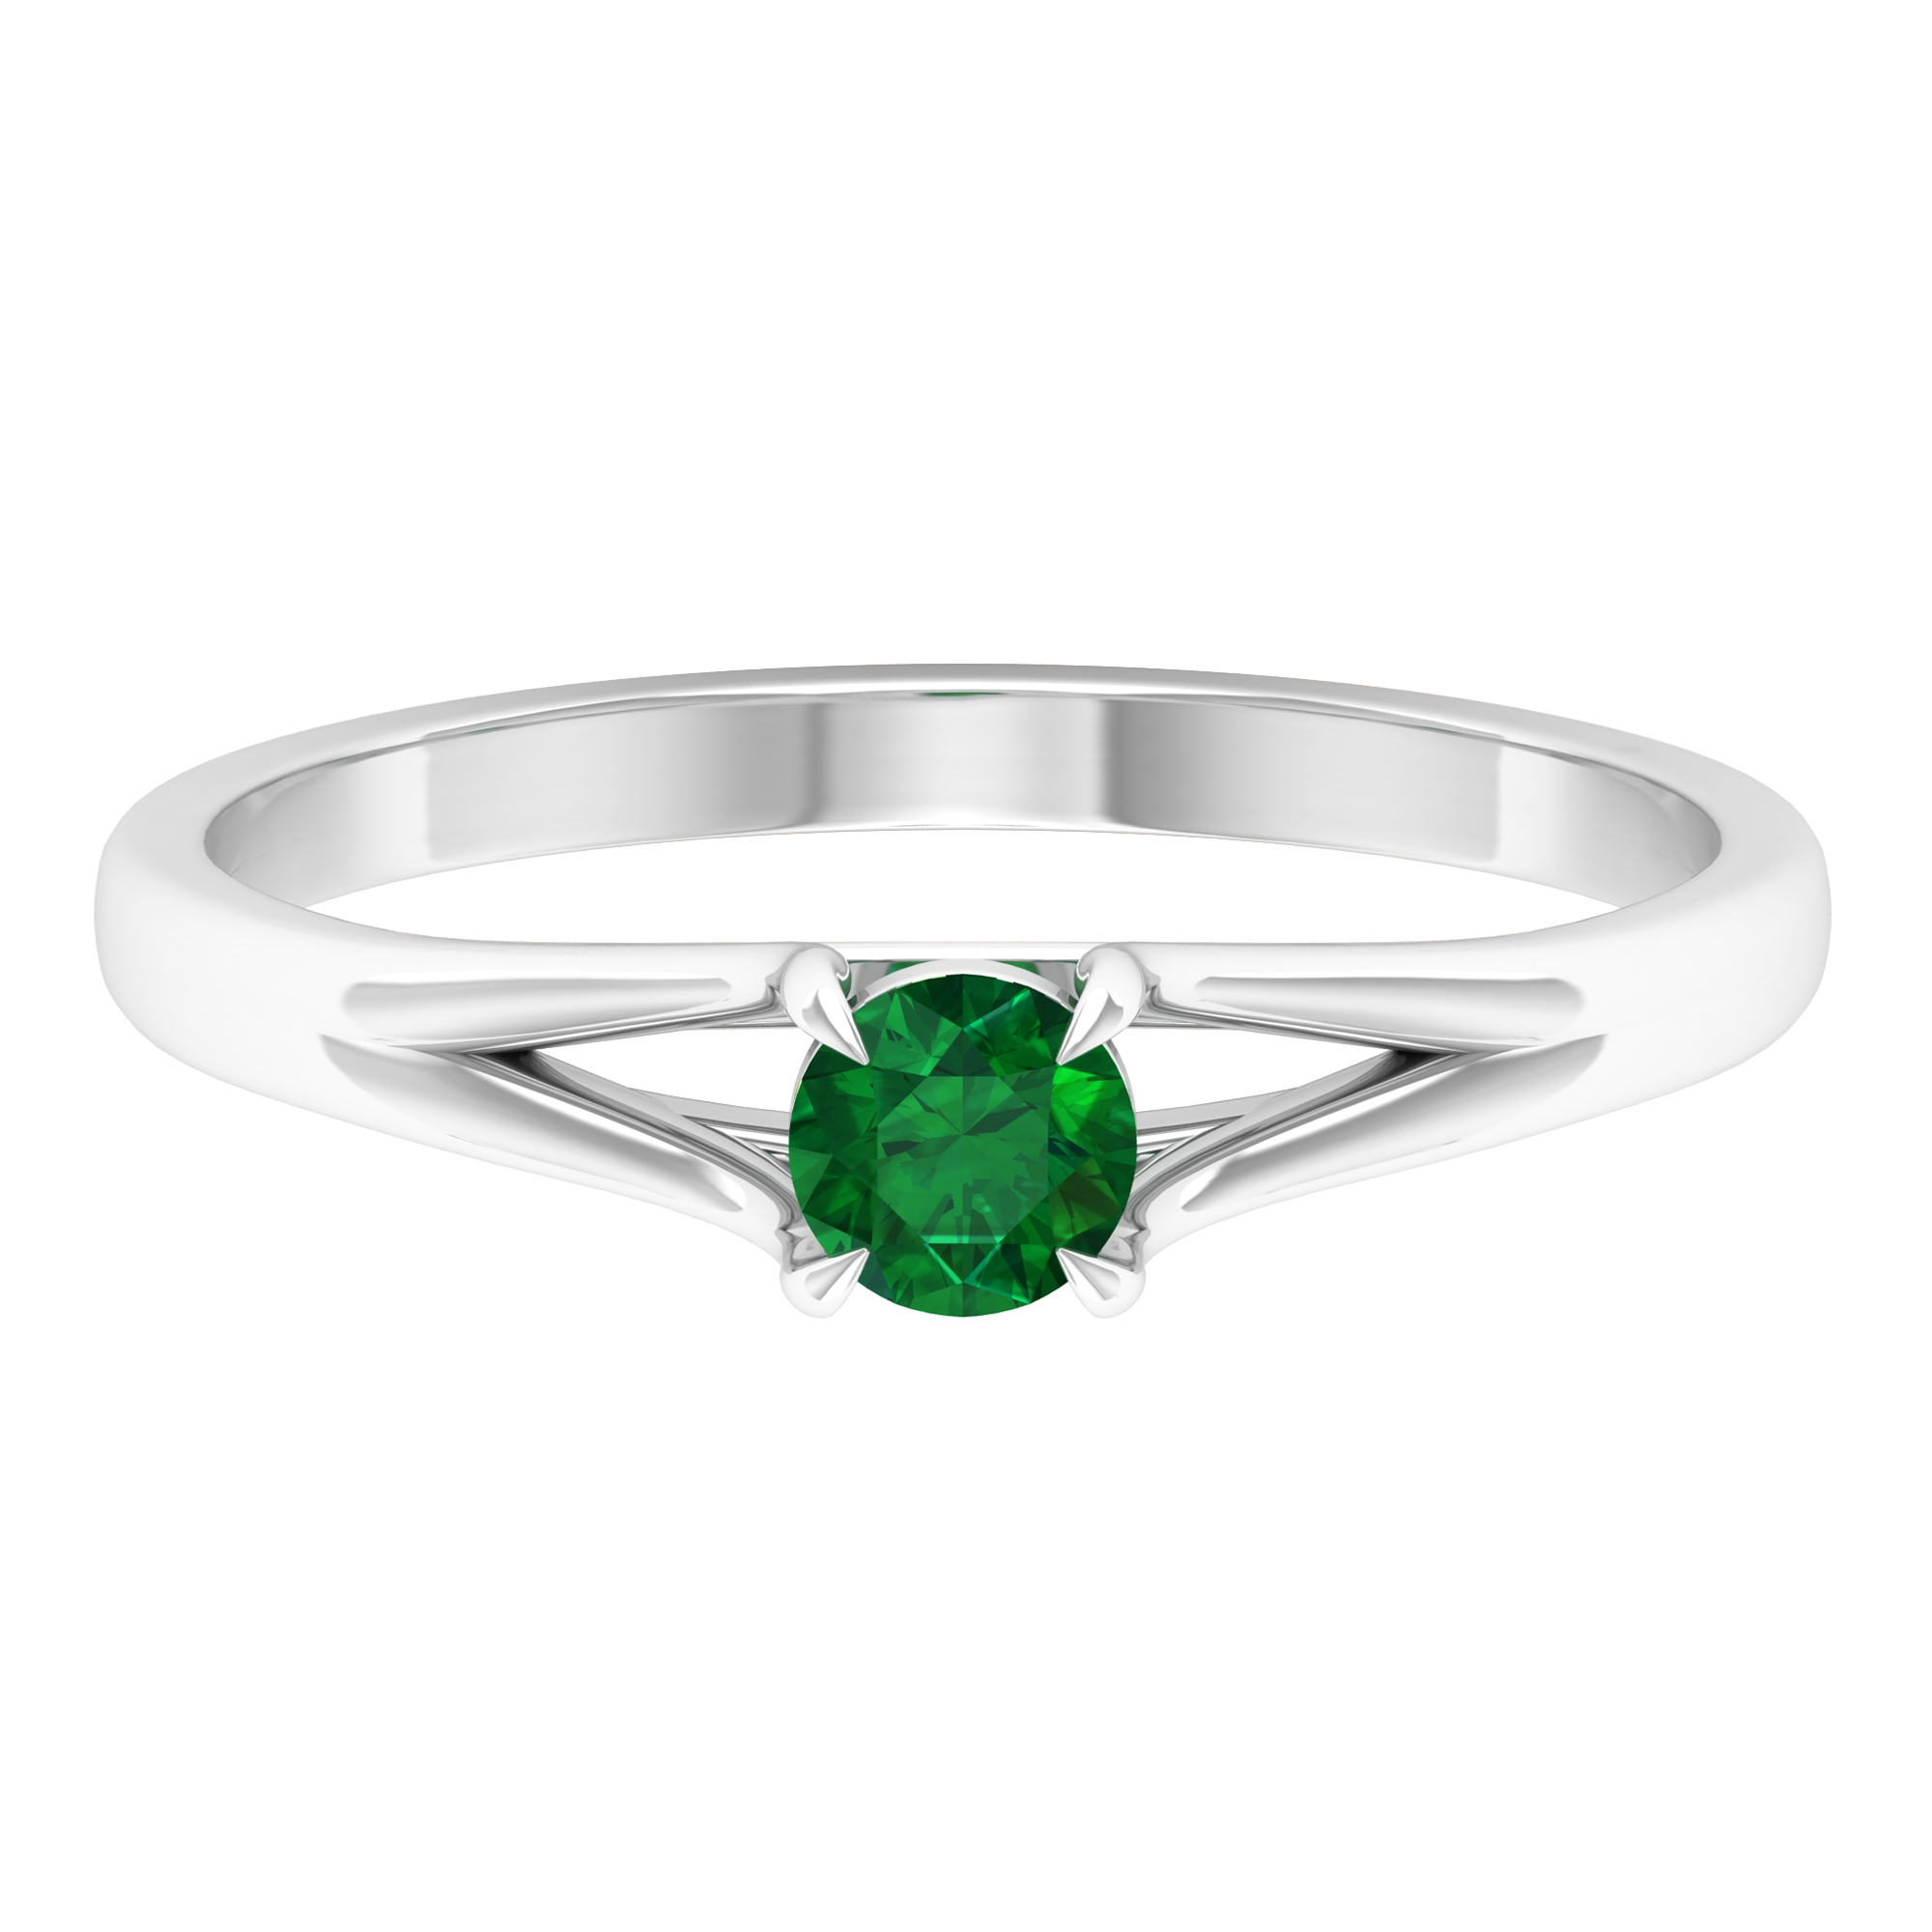 Claw Set 4 MM Round Cut Solitaire Emerald Split Shank Ring